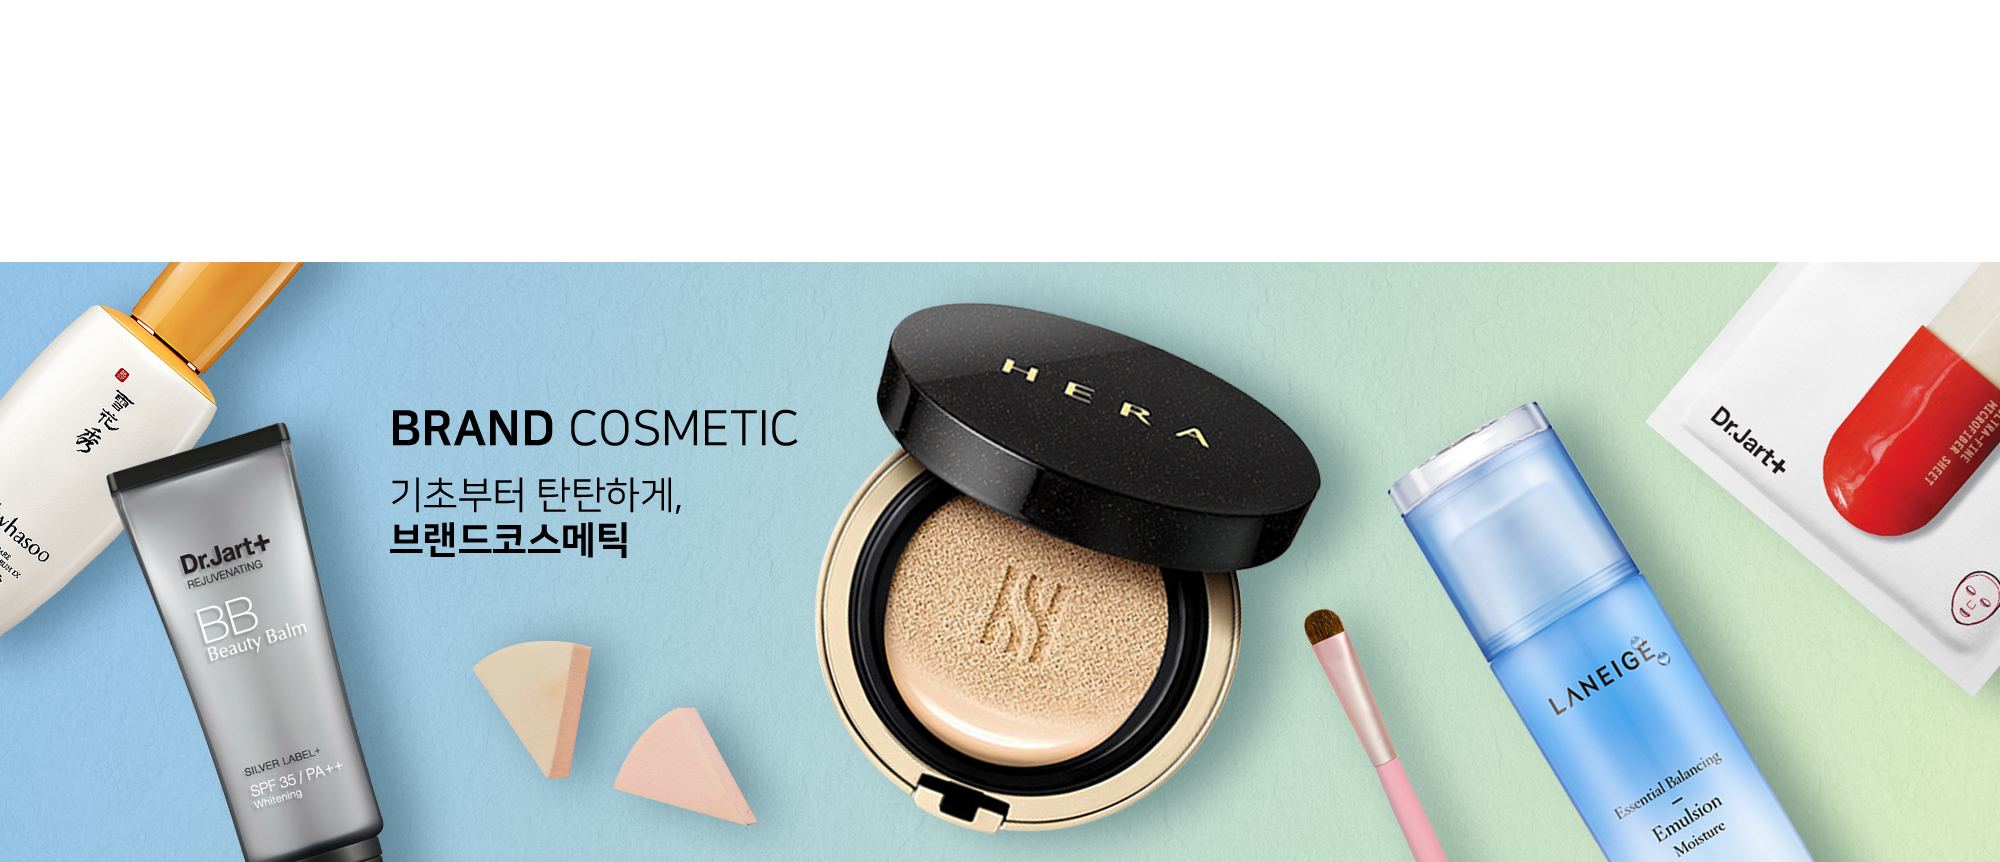 BRAND COSMETIC